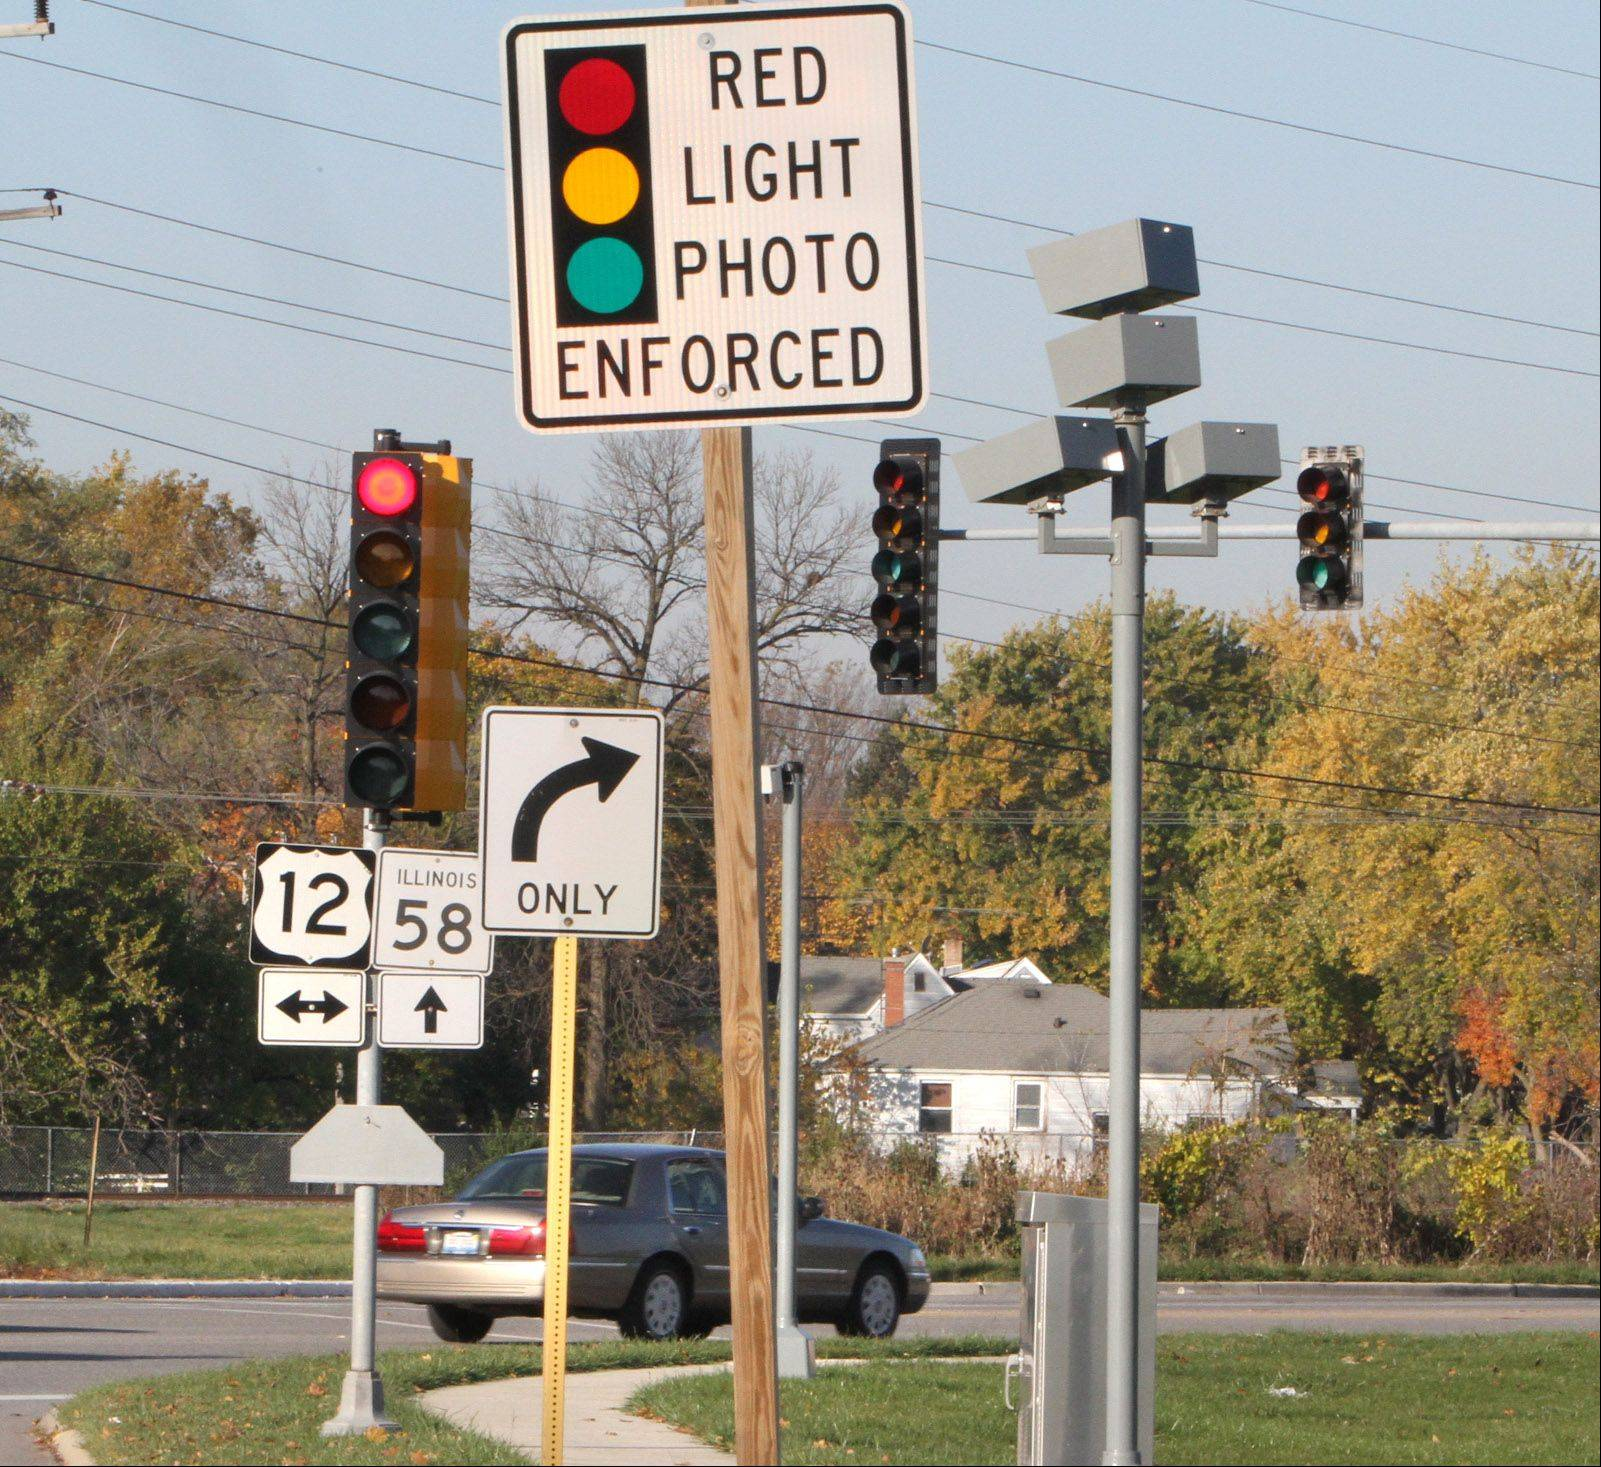 A resident-led movement is afoot in Des Plaines to do away with the red-light cameras at the intersection of Golf and Rand roads. Opponents say data shows crashes have nearly doubled at the intersection since the cameras went up in 2010.